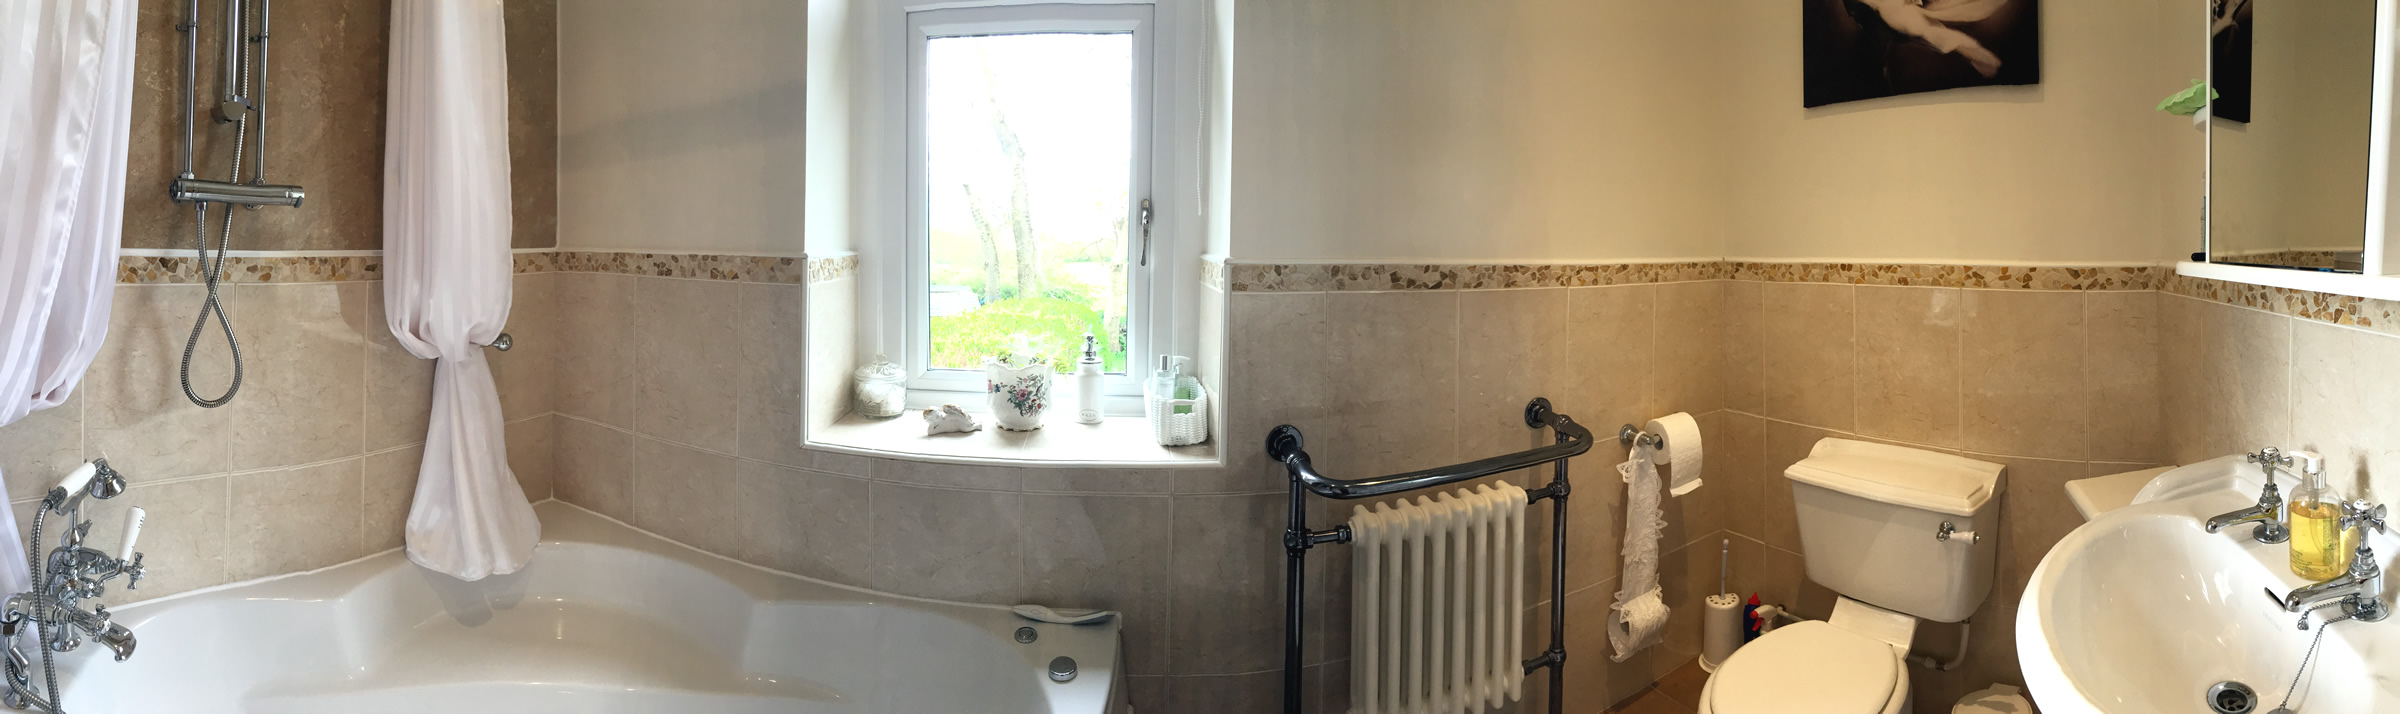 A bathroom at our Bed and Breakfast